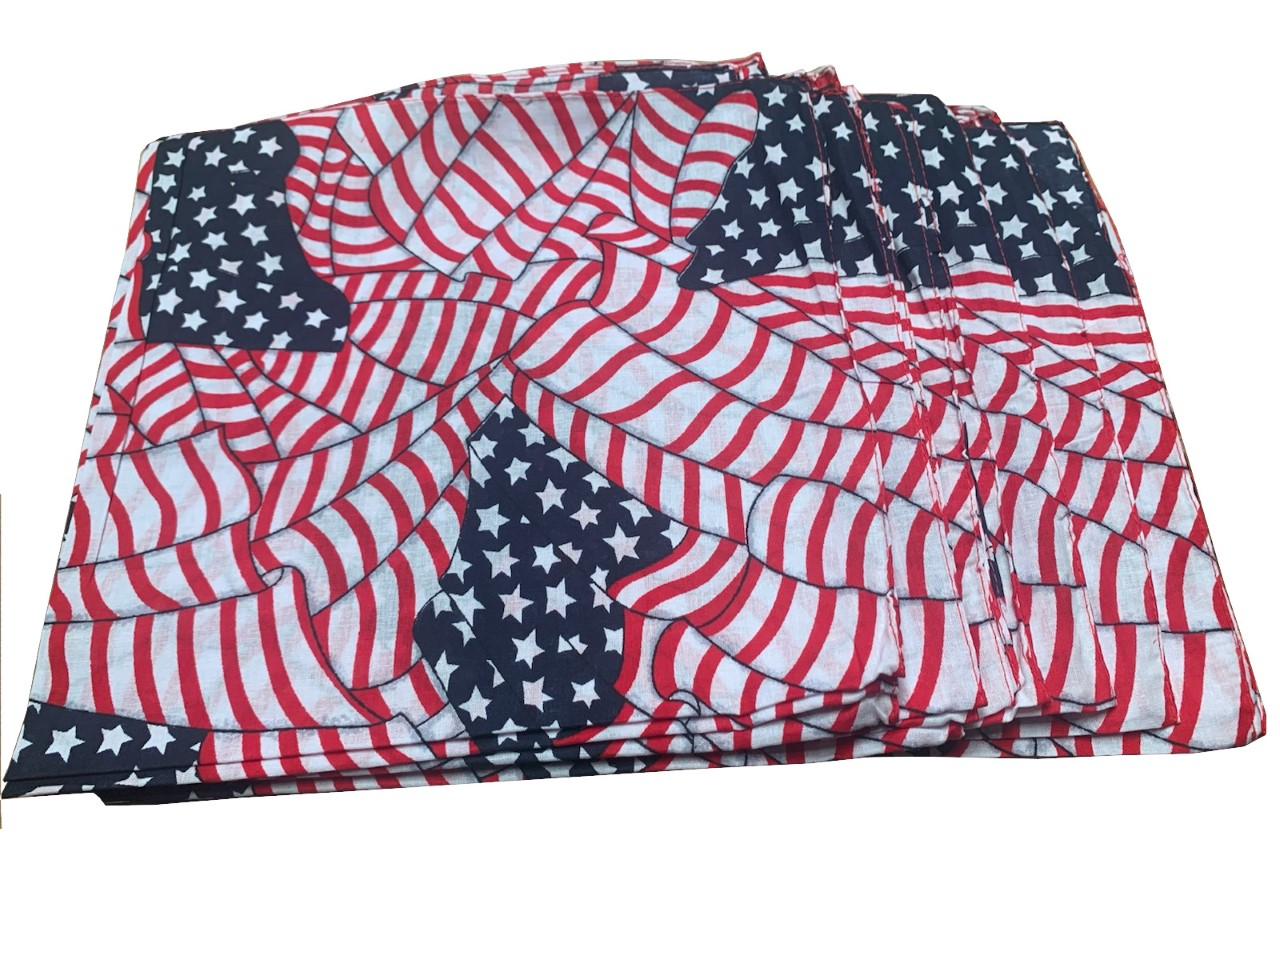 "Tossed American Flags Bandana 22"" x 22"" (12 PK) 100% Cotton"